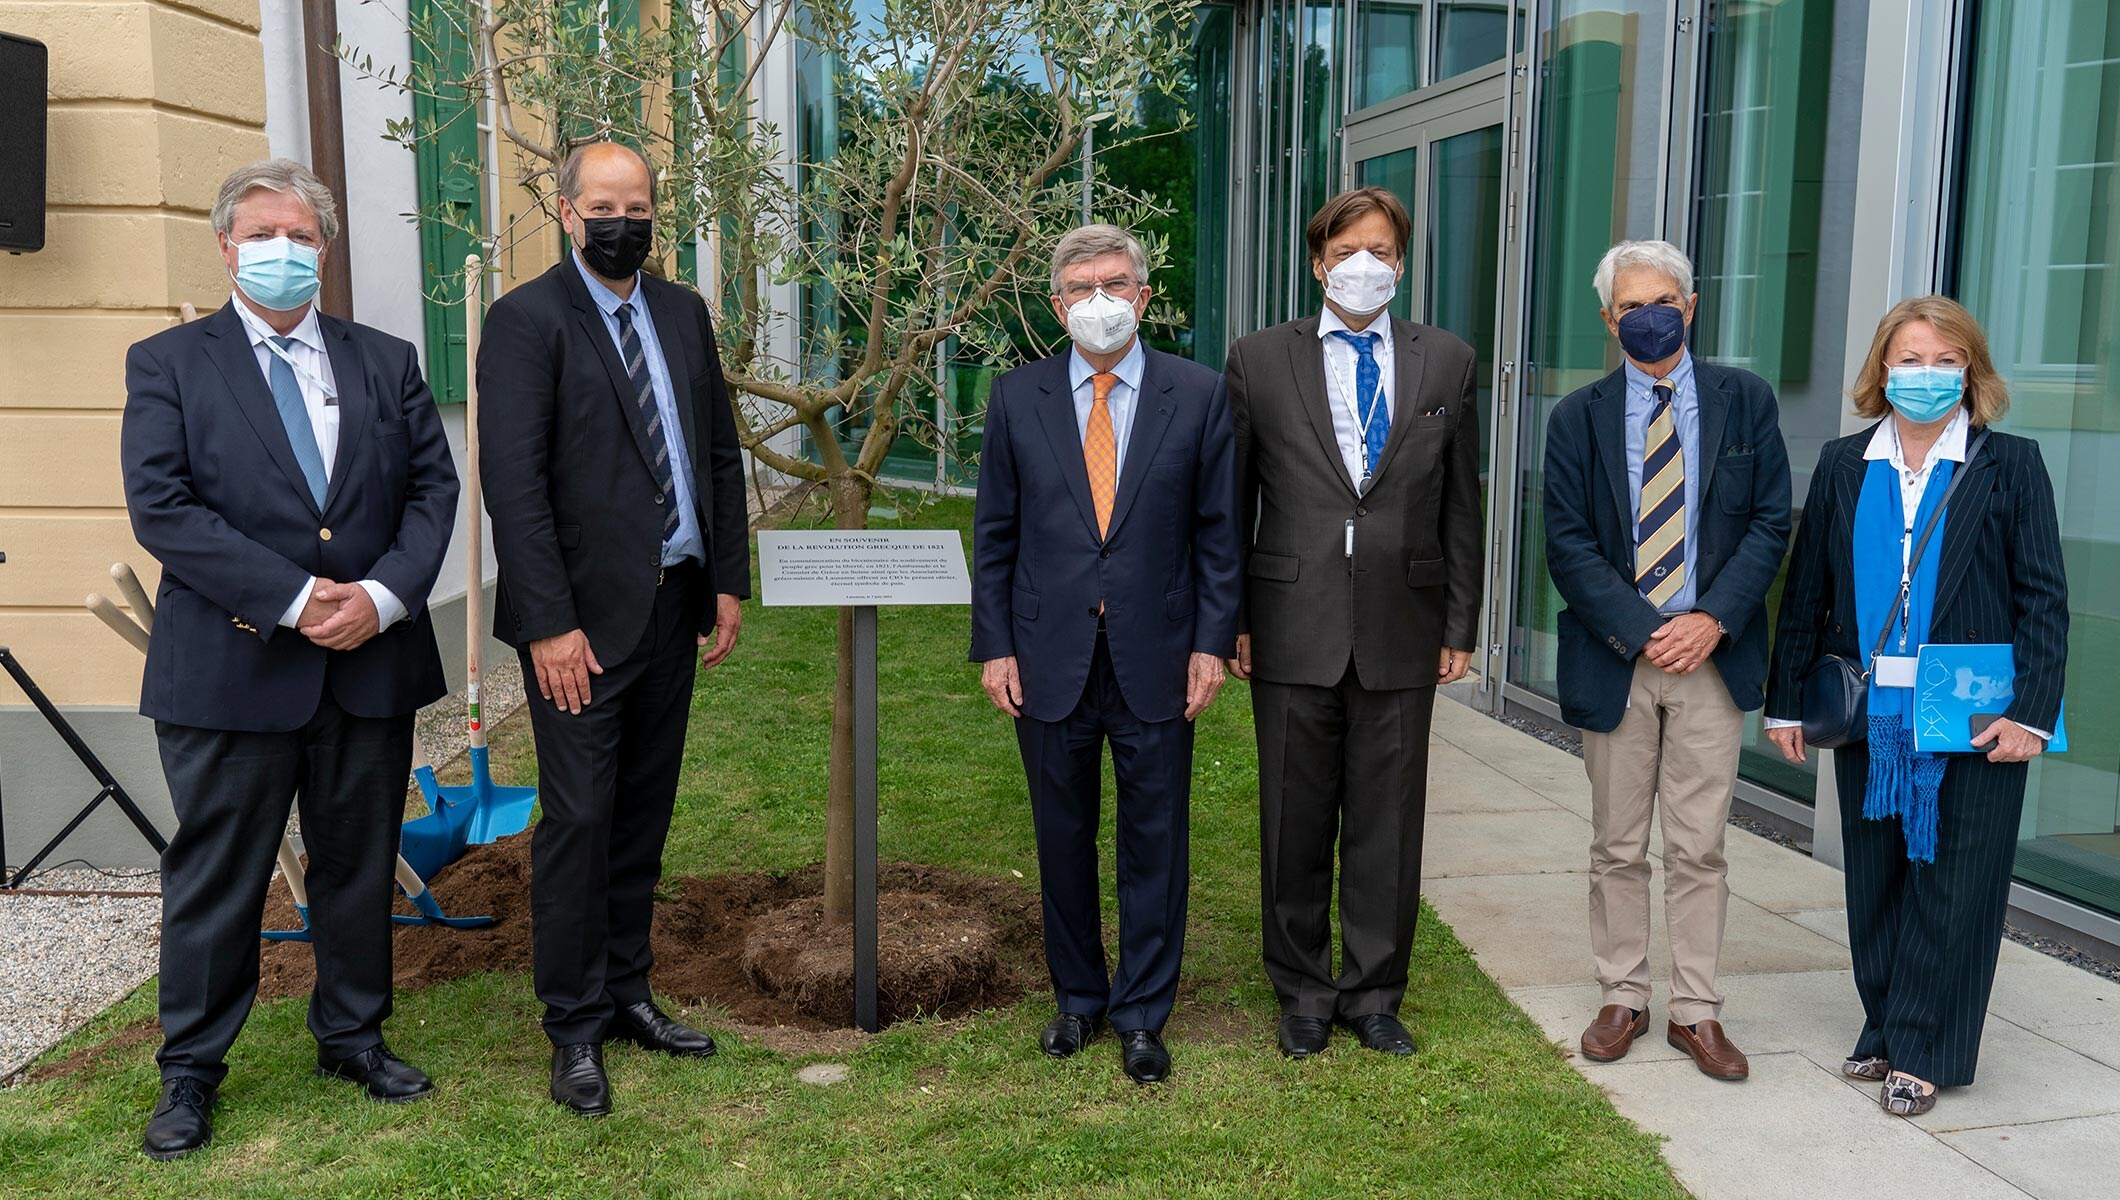 IOC President, Thomas Bach attends Olive Tree planting at Olympic House